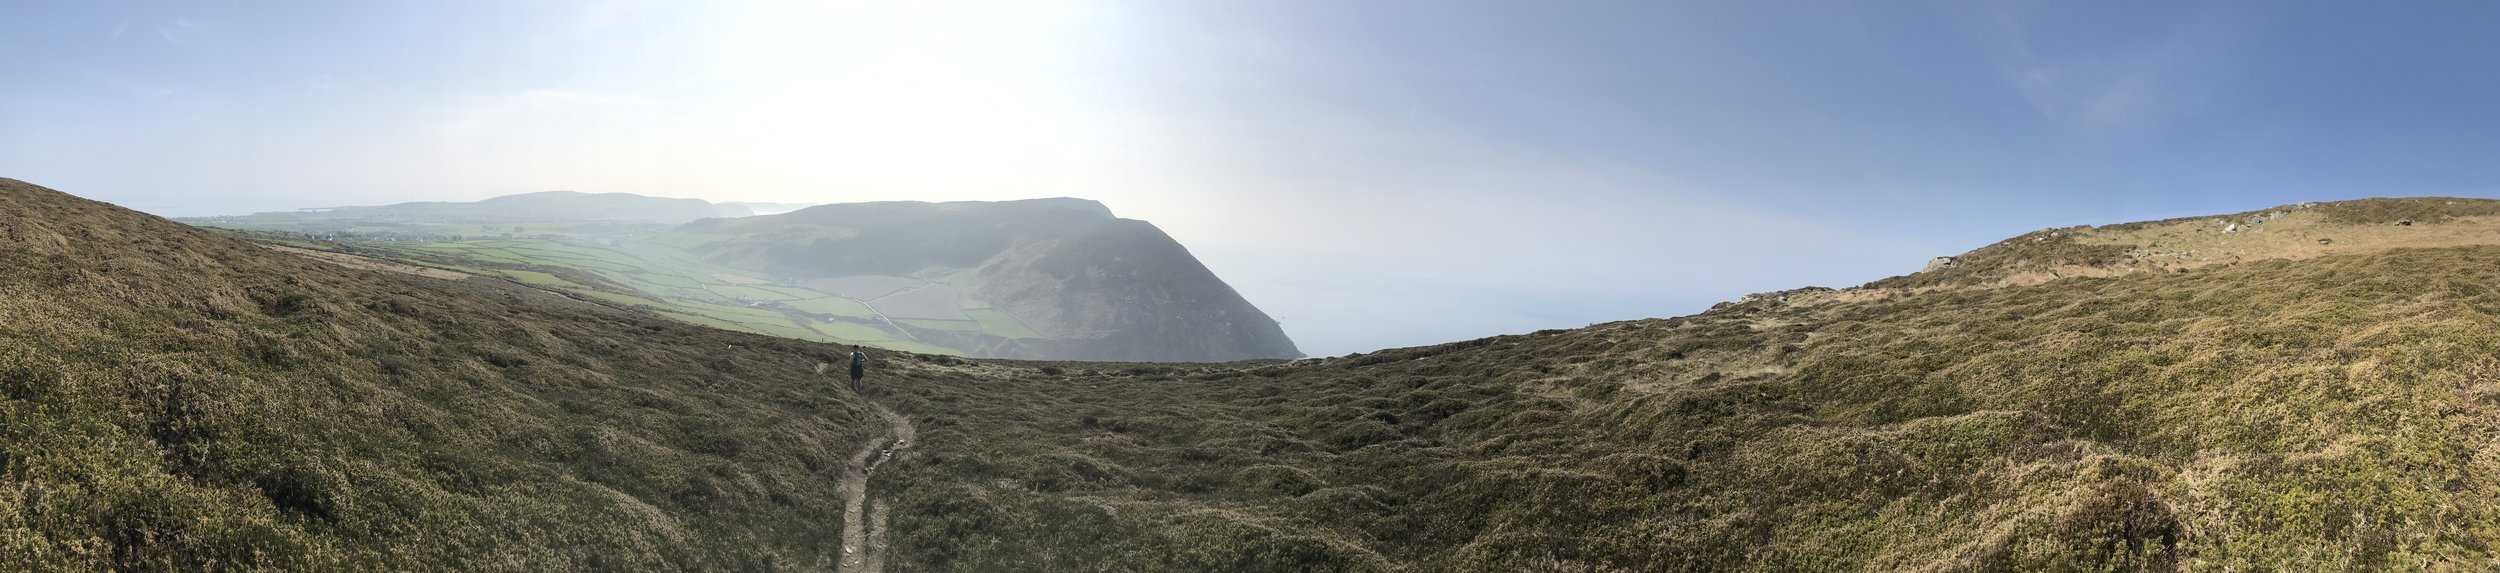 Port Erin to the top left of the photo. The shocker climb by the road directly ahead.